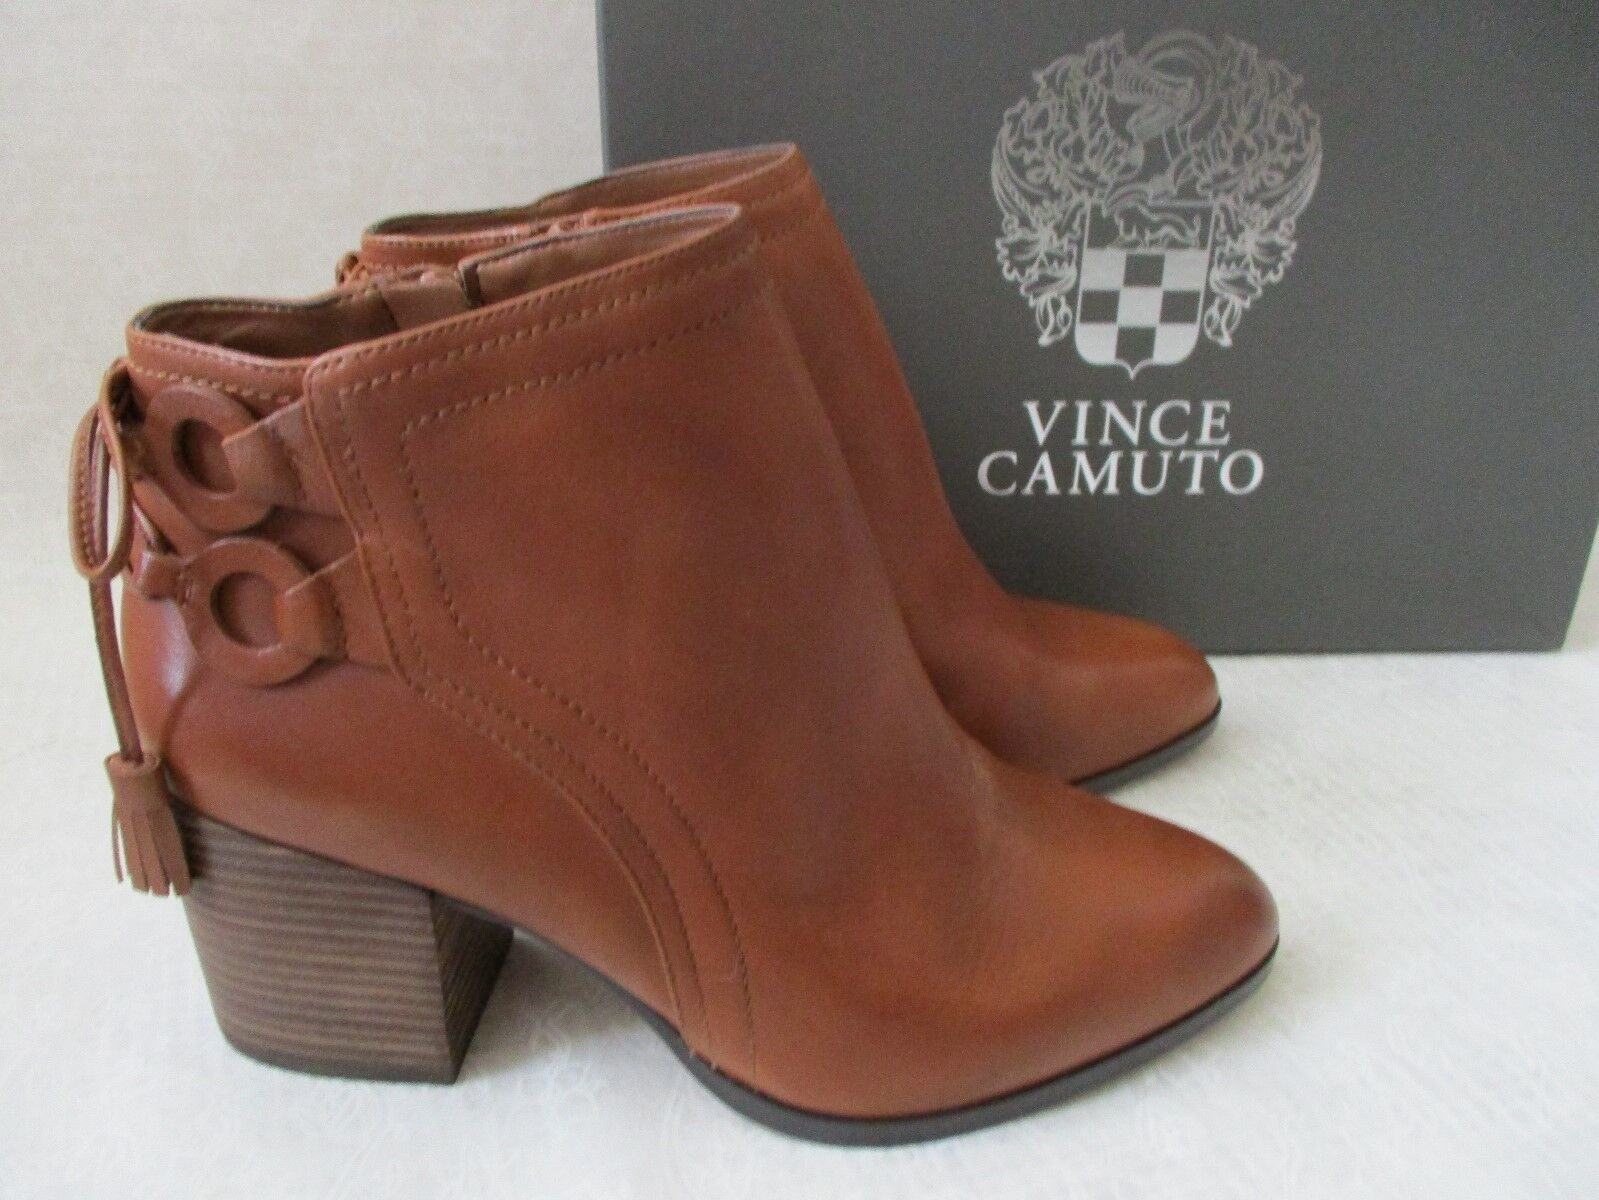 139 VINCE CAMUTO LEATHER BROWN ANKLE ZIP UP BOOTS SIZE 9 W - NEW